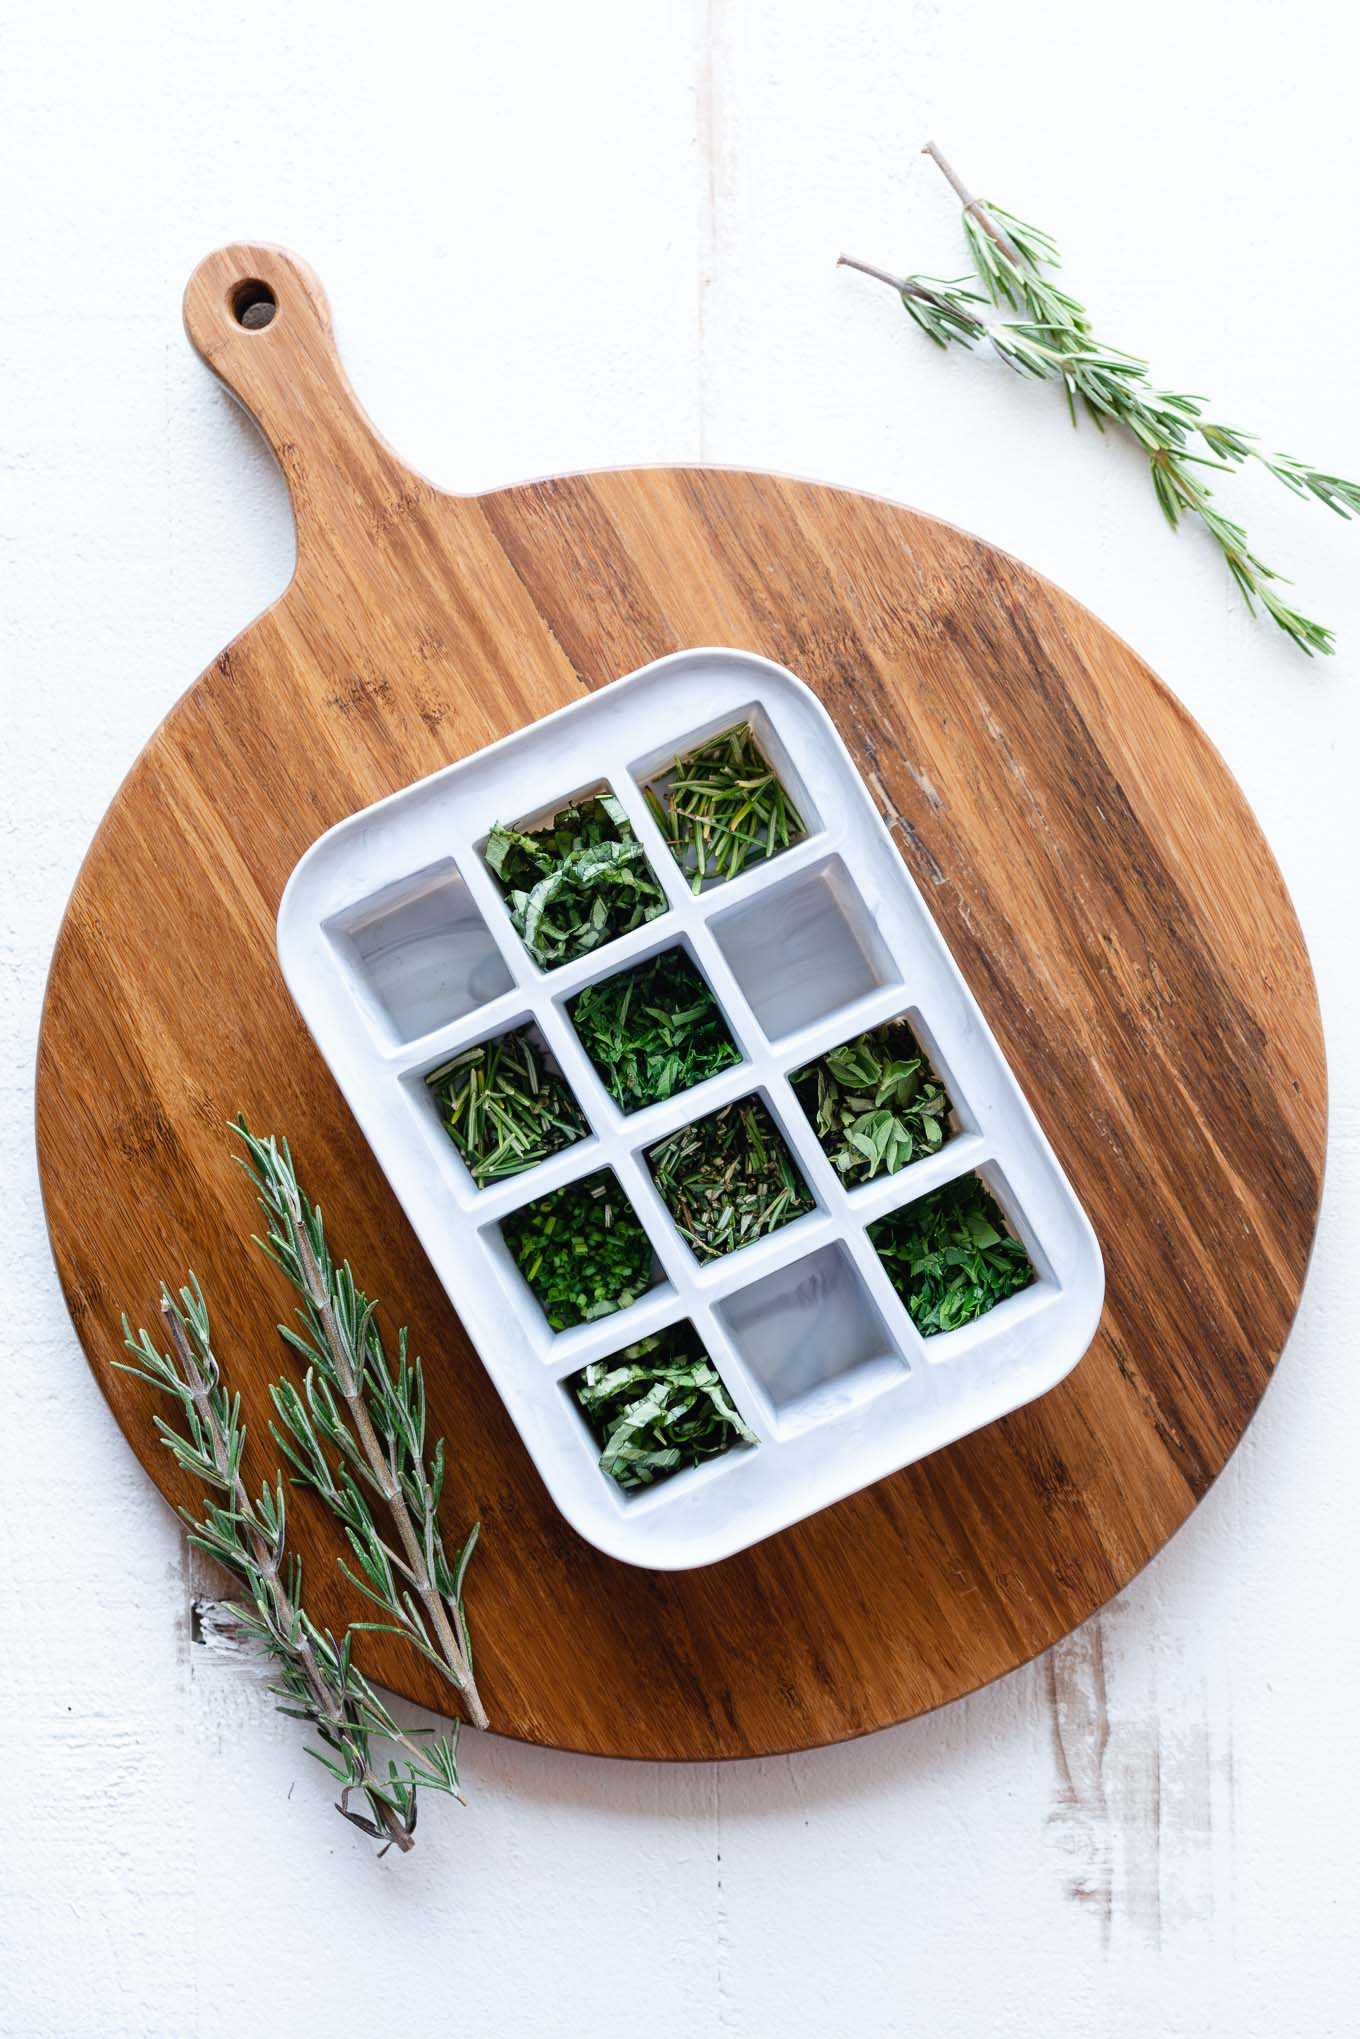 Chopped herbs in white ice cube tray on brown cutting board